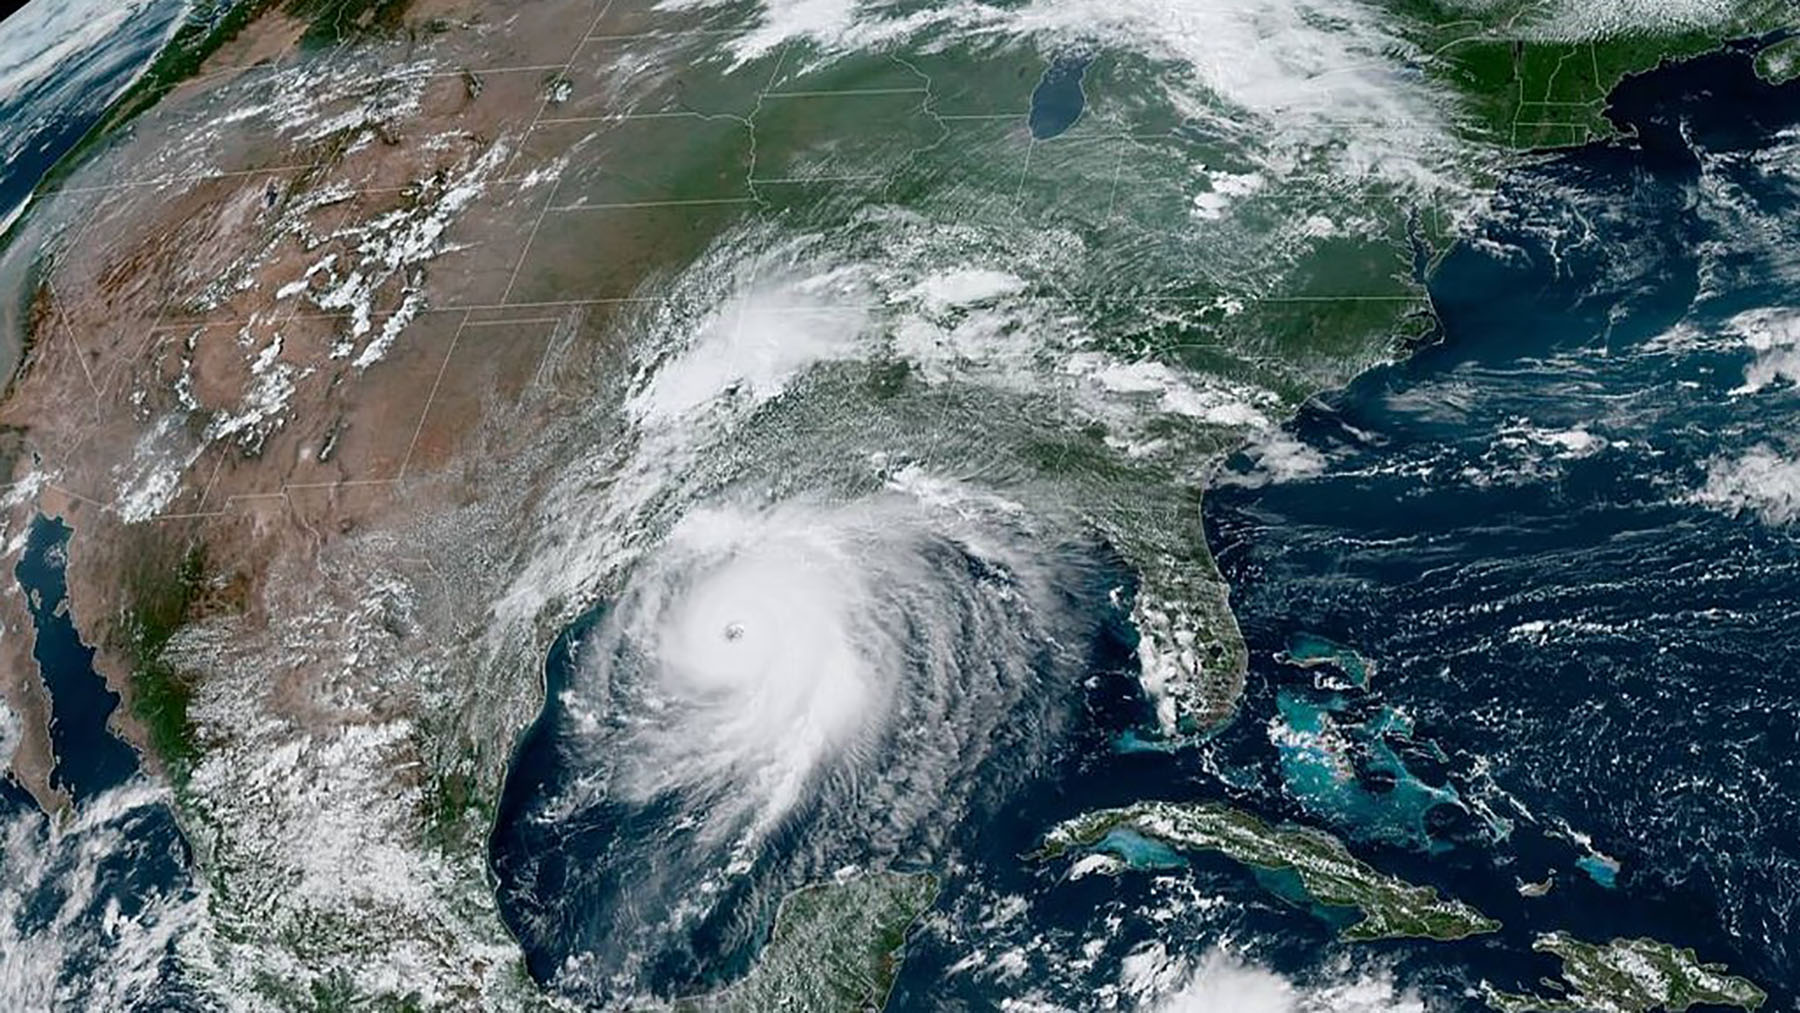 Satellite imagery shows Hurricane Laura churning towards the U.S. Gulf Coast on August 26, 2020. (NOAA)